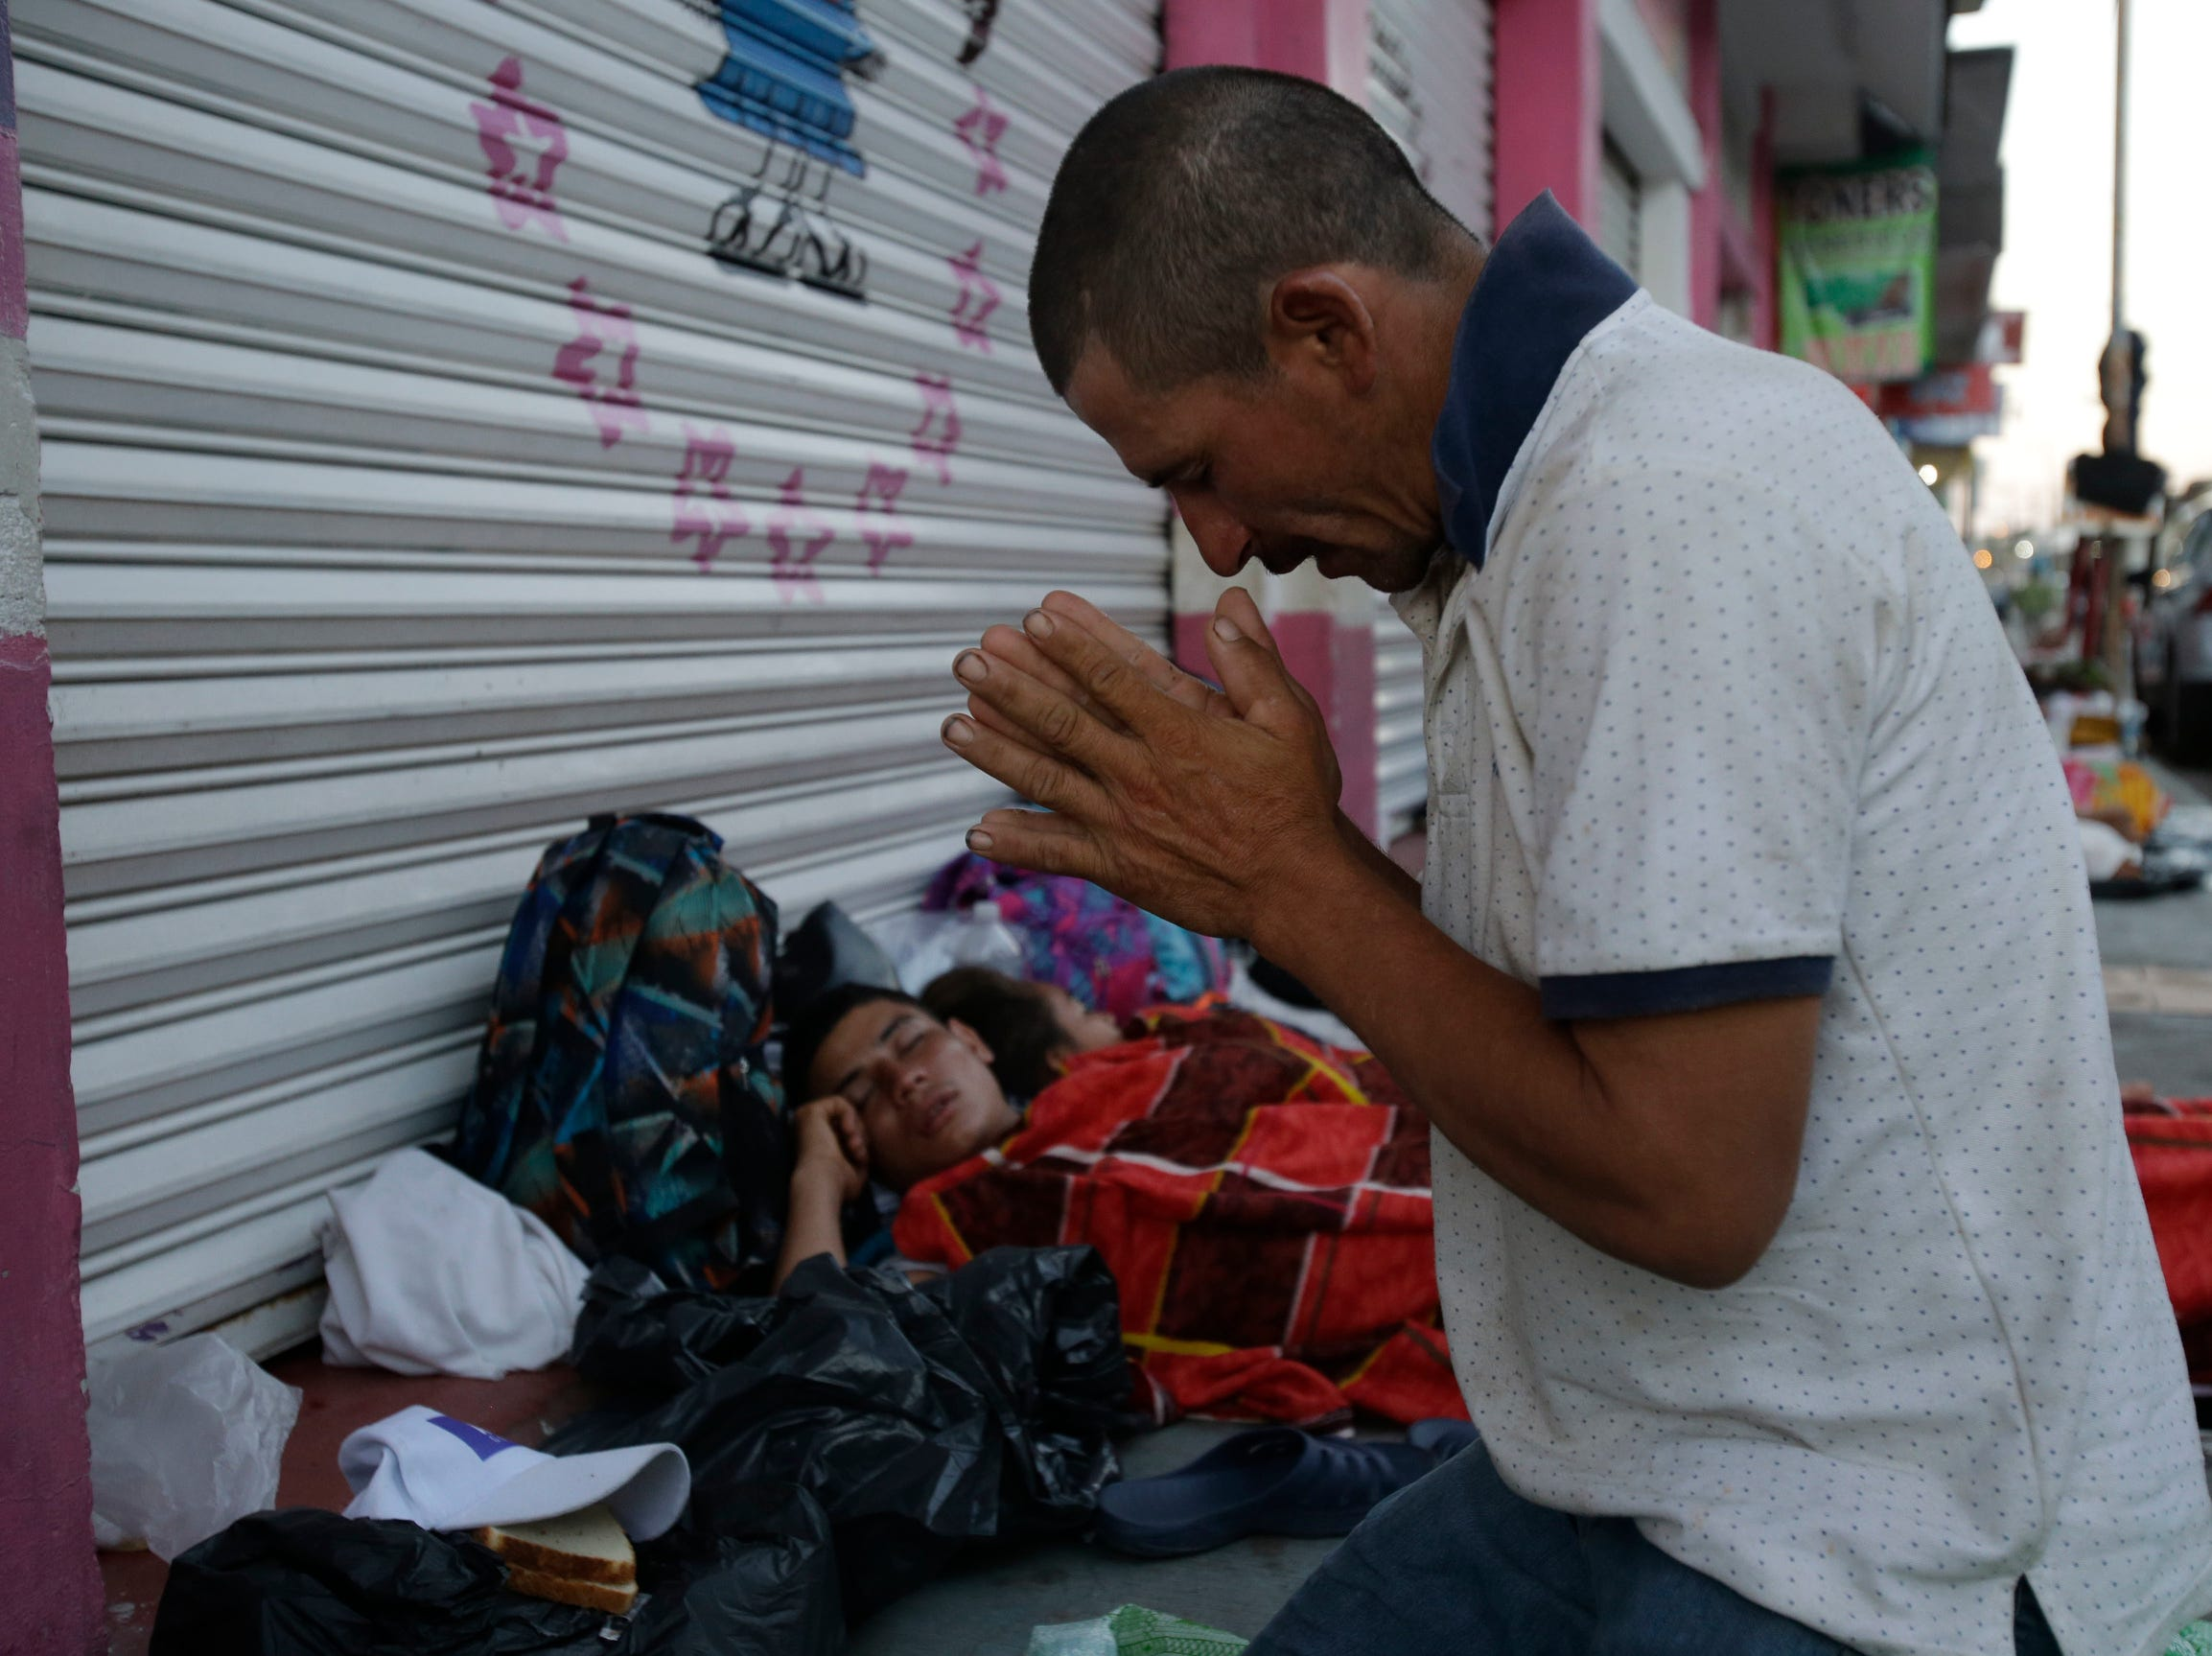 Marvin Sanabria, a Central American migrant traveling with a caravan to the U.S., kneels in prayer after waking up, in Huixtla, Mexico, Tuesday. The caravan, estimated to include more than 7,000 people, had advanced but still faced more than 1,000 miles, and likely much further, to the end of the journey.